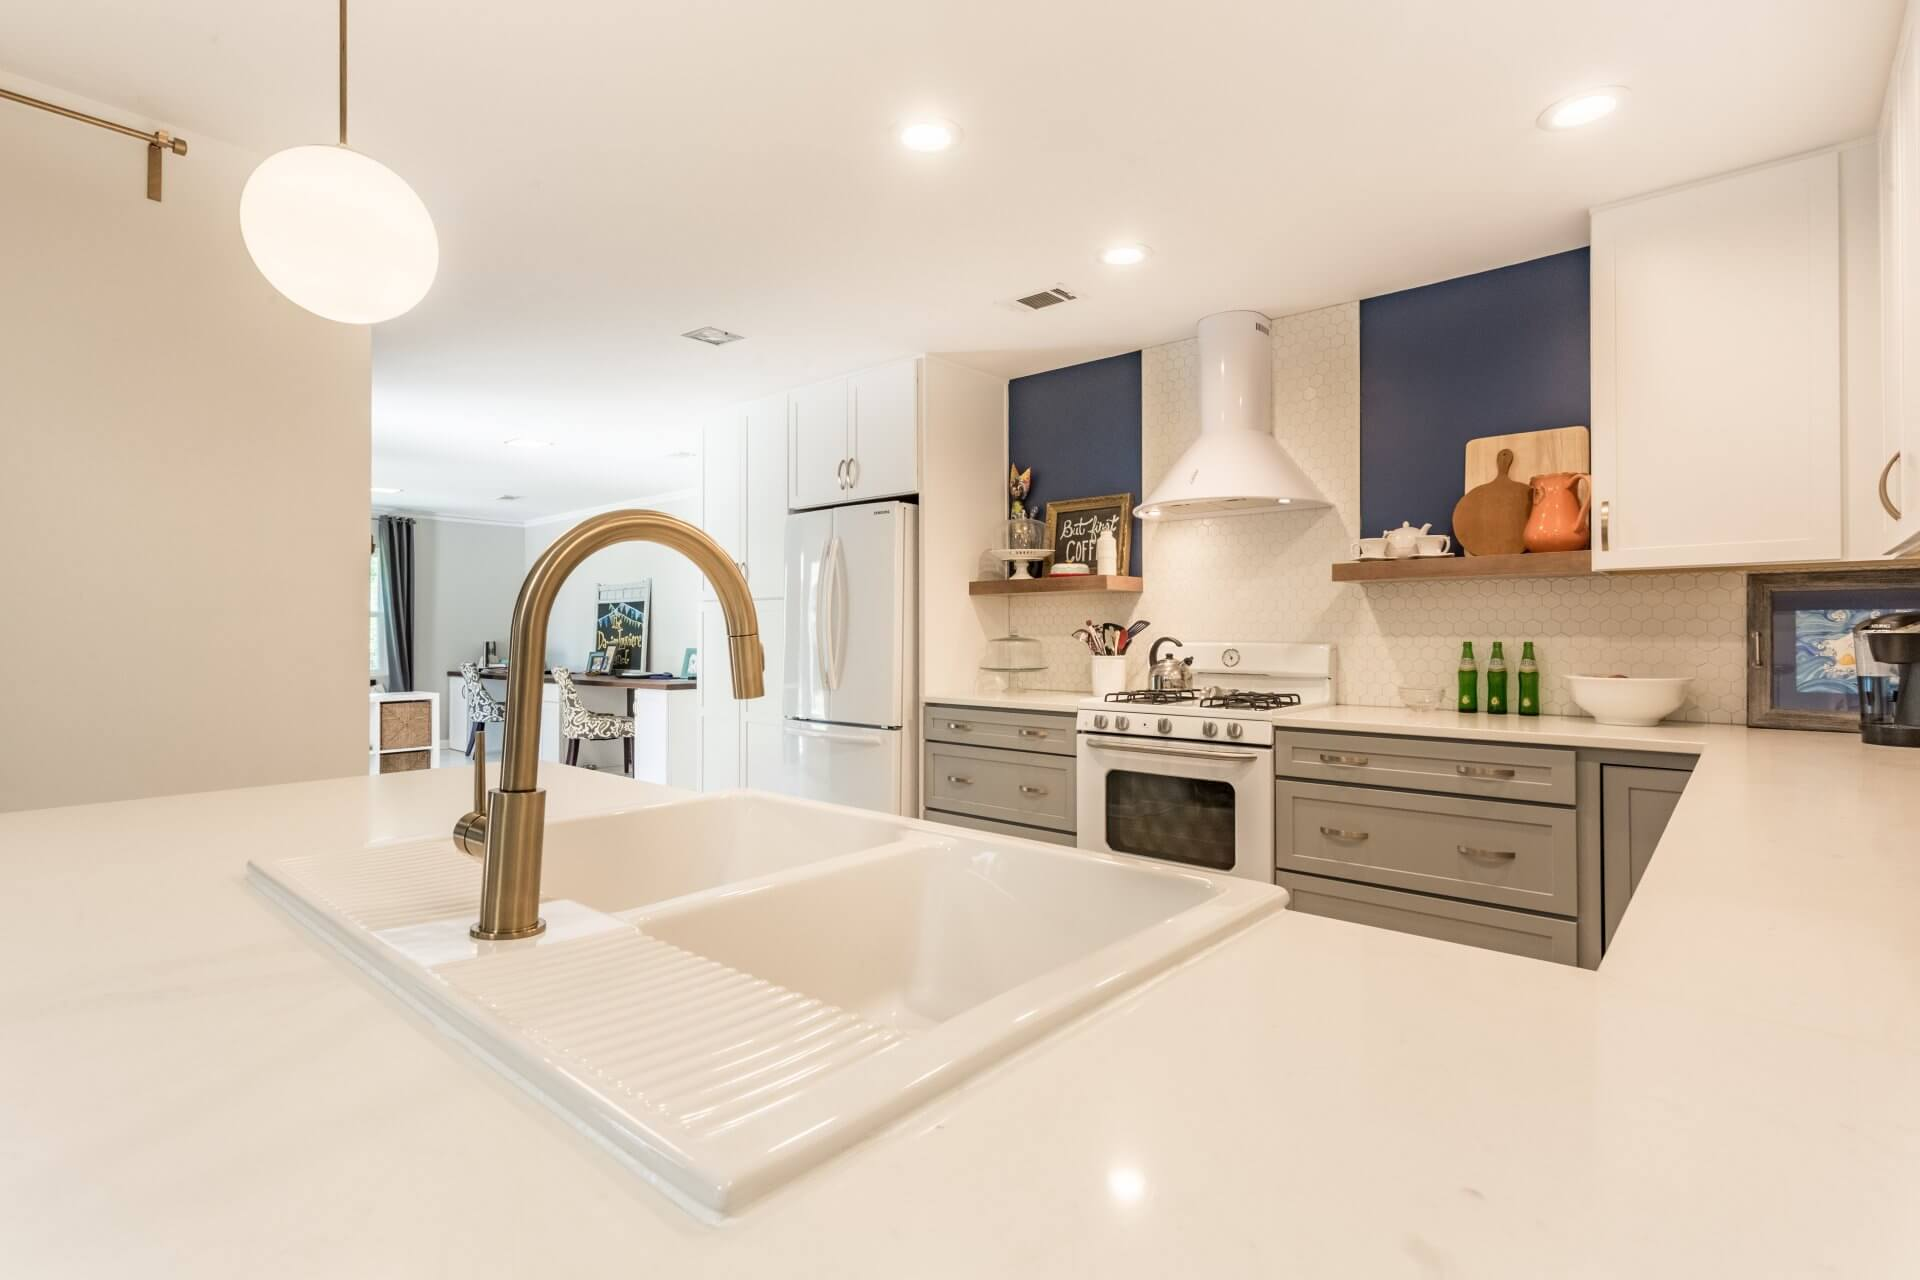 After: Mid-century modern kitchen remodel featuring bronze faucet and double sink